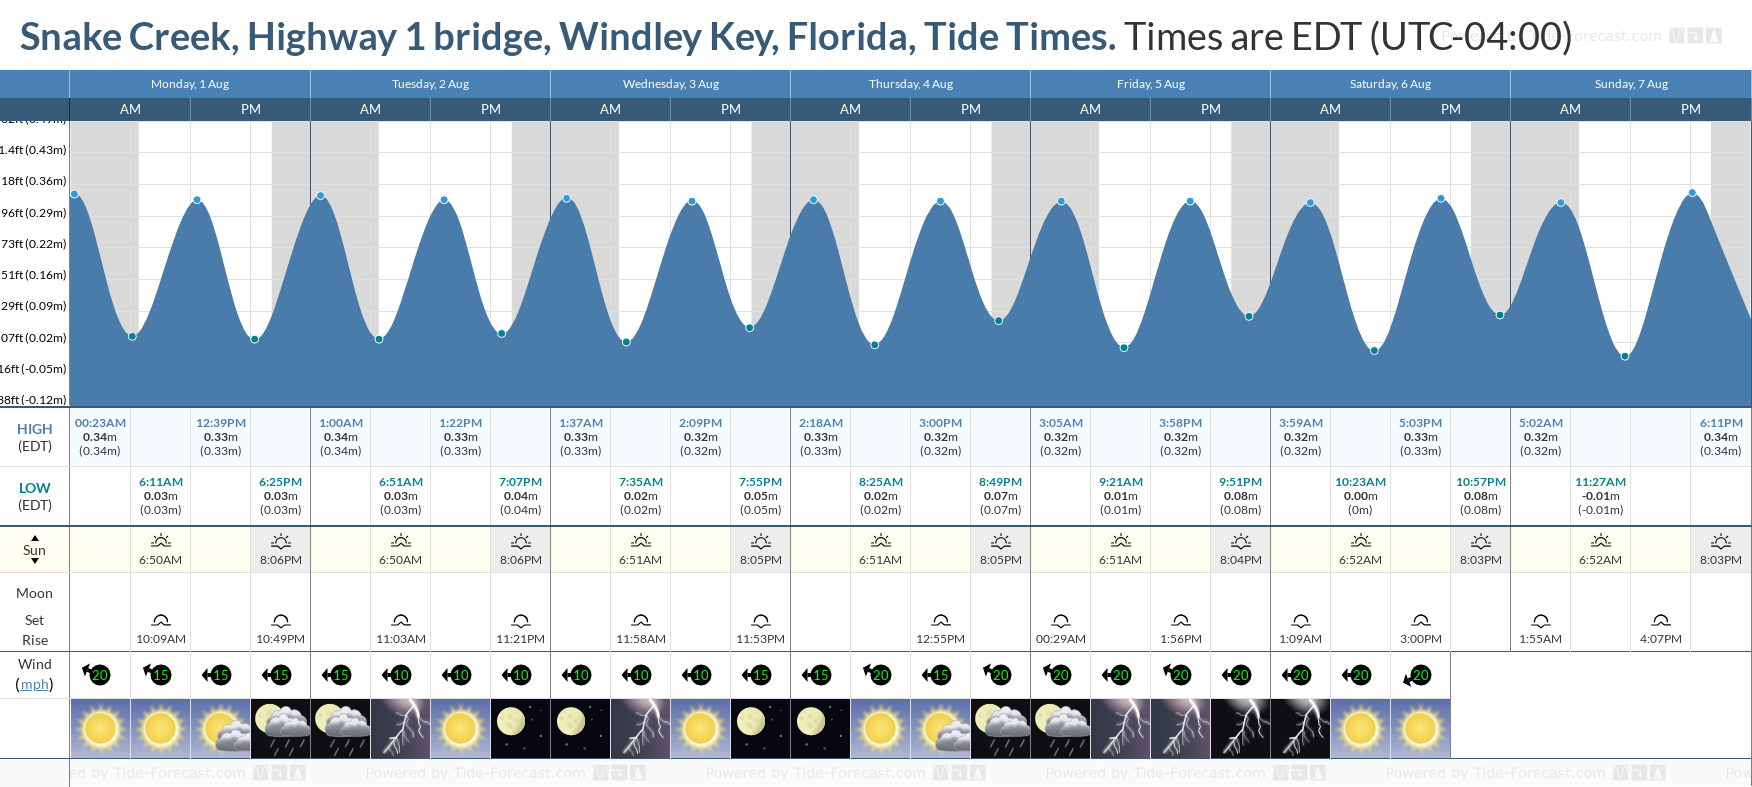 Snake Creek, Highway 1 bridge, Windley Key, Florida Tide Chart including high and low tide tide times for the next 7 days